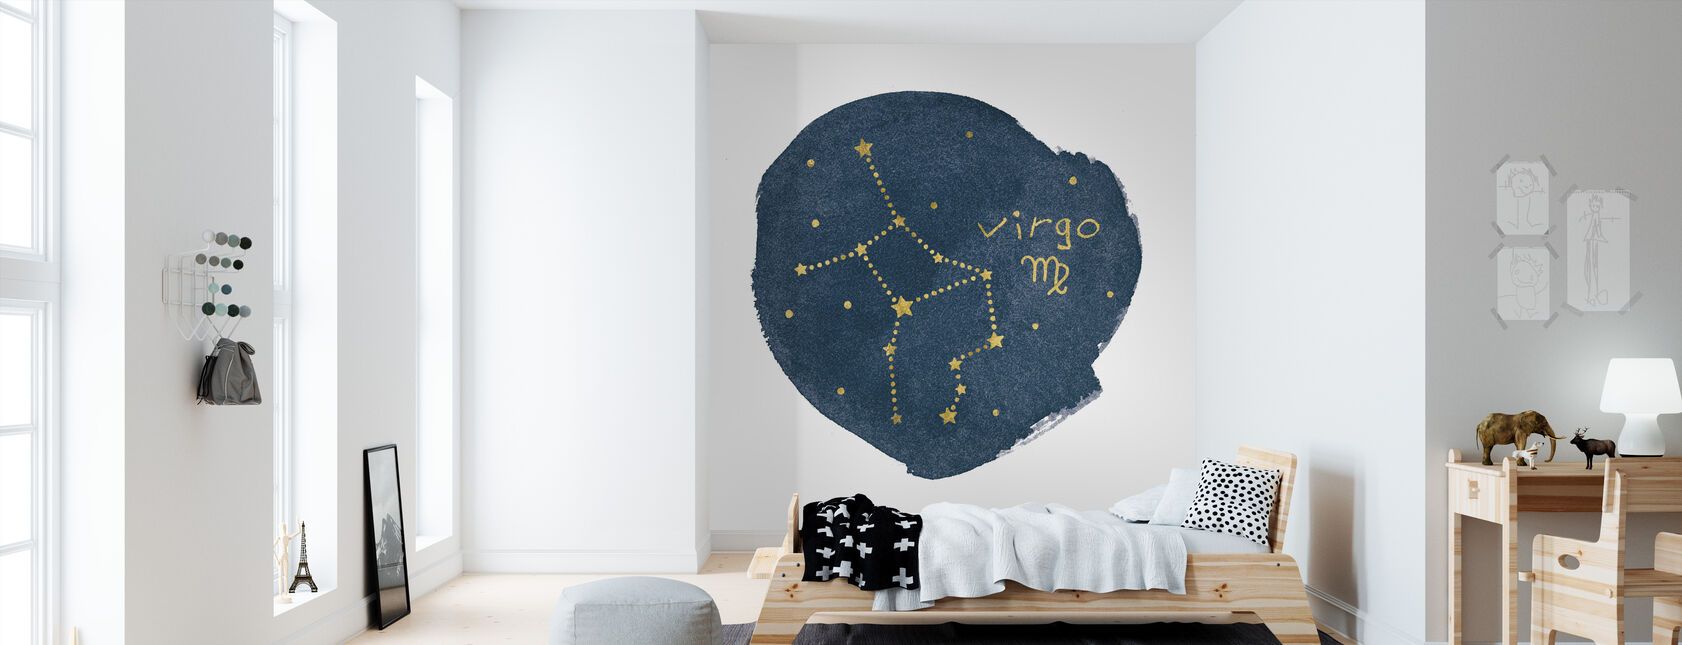 Horoscope Virgo - Wallpaper - Kids Room